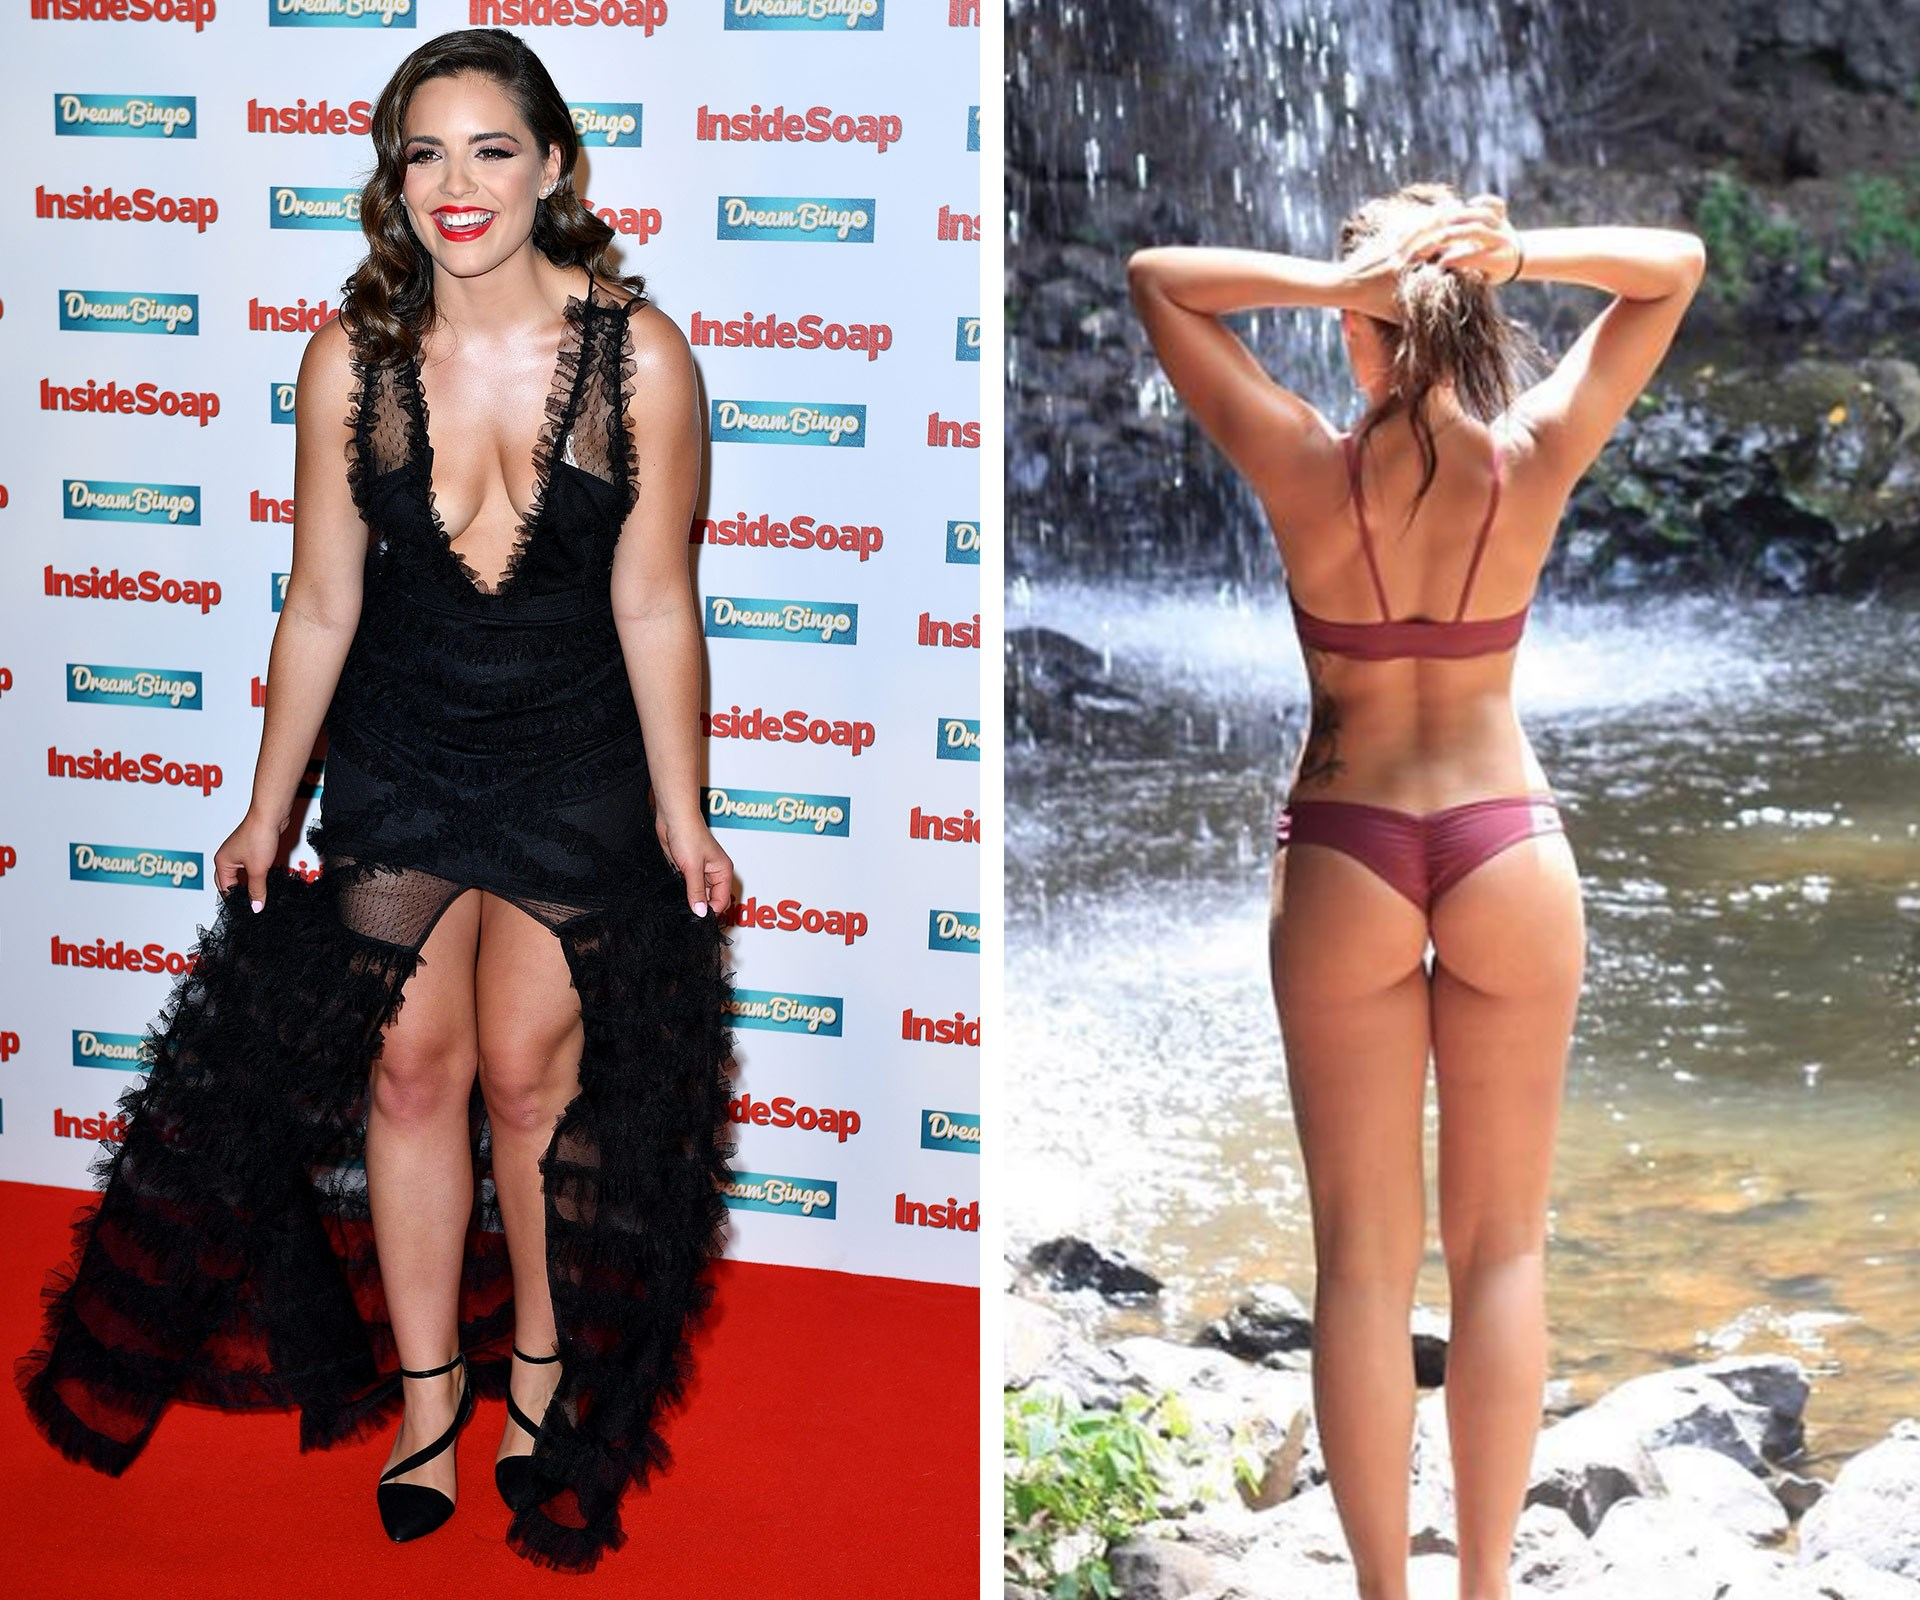 *Neighbours* star Olympia Valance has taken to Instagram with a stunning, lagoon-side snap showing off her impressive 20kg weight loss, which she achieved through a balanced diet and regular F45 training sessions.